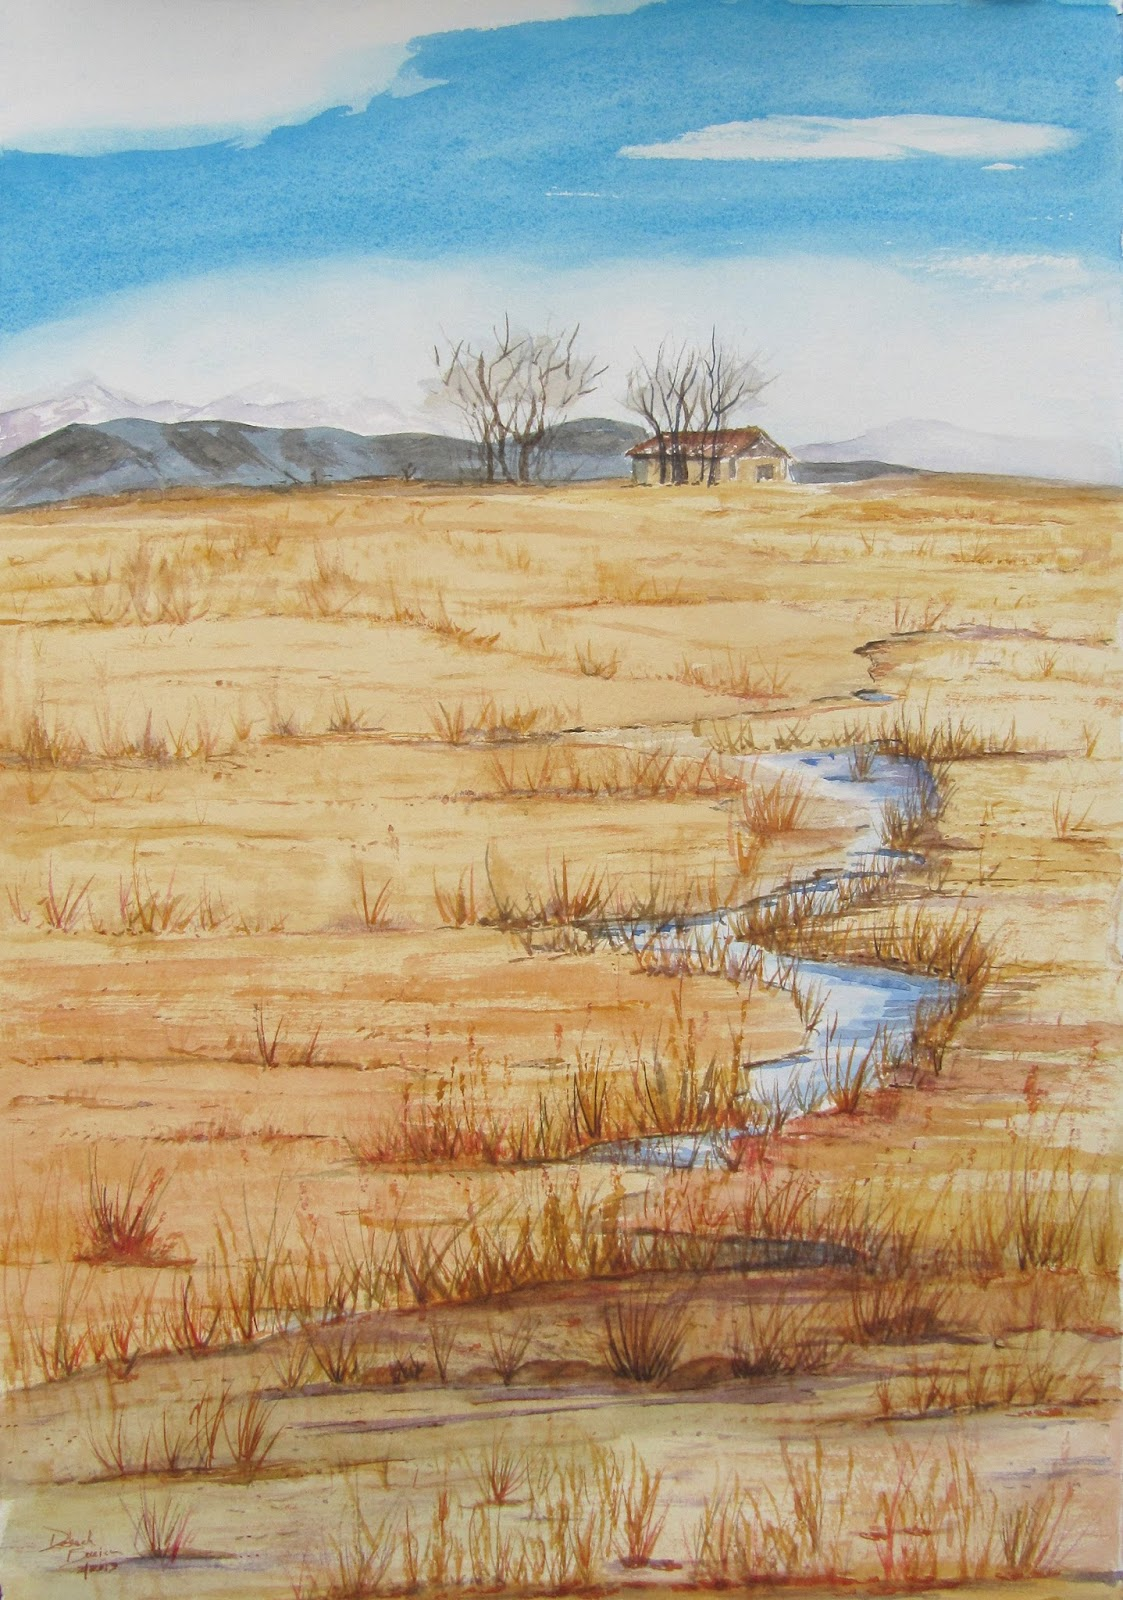 Historic Paths: 24 Works on Paper Artist Deborah Burian